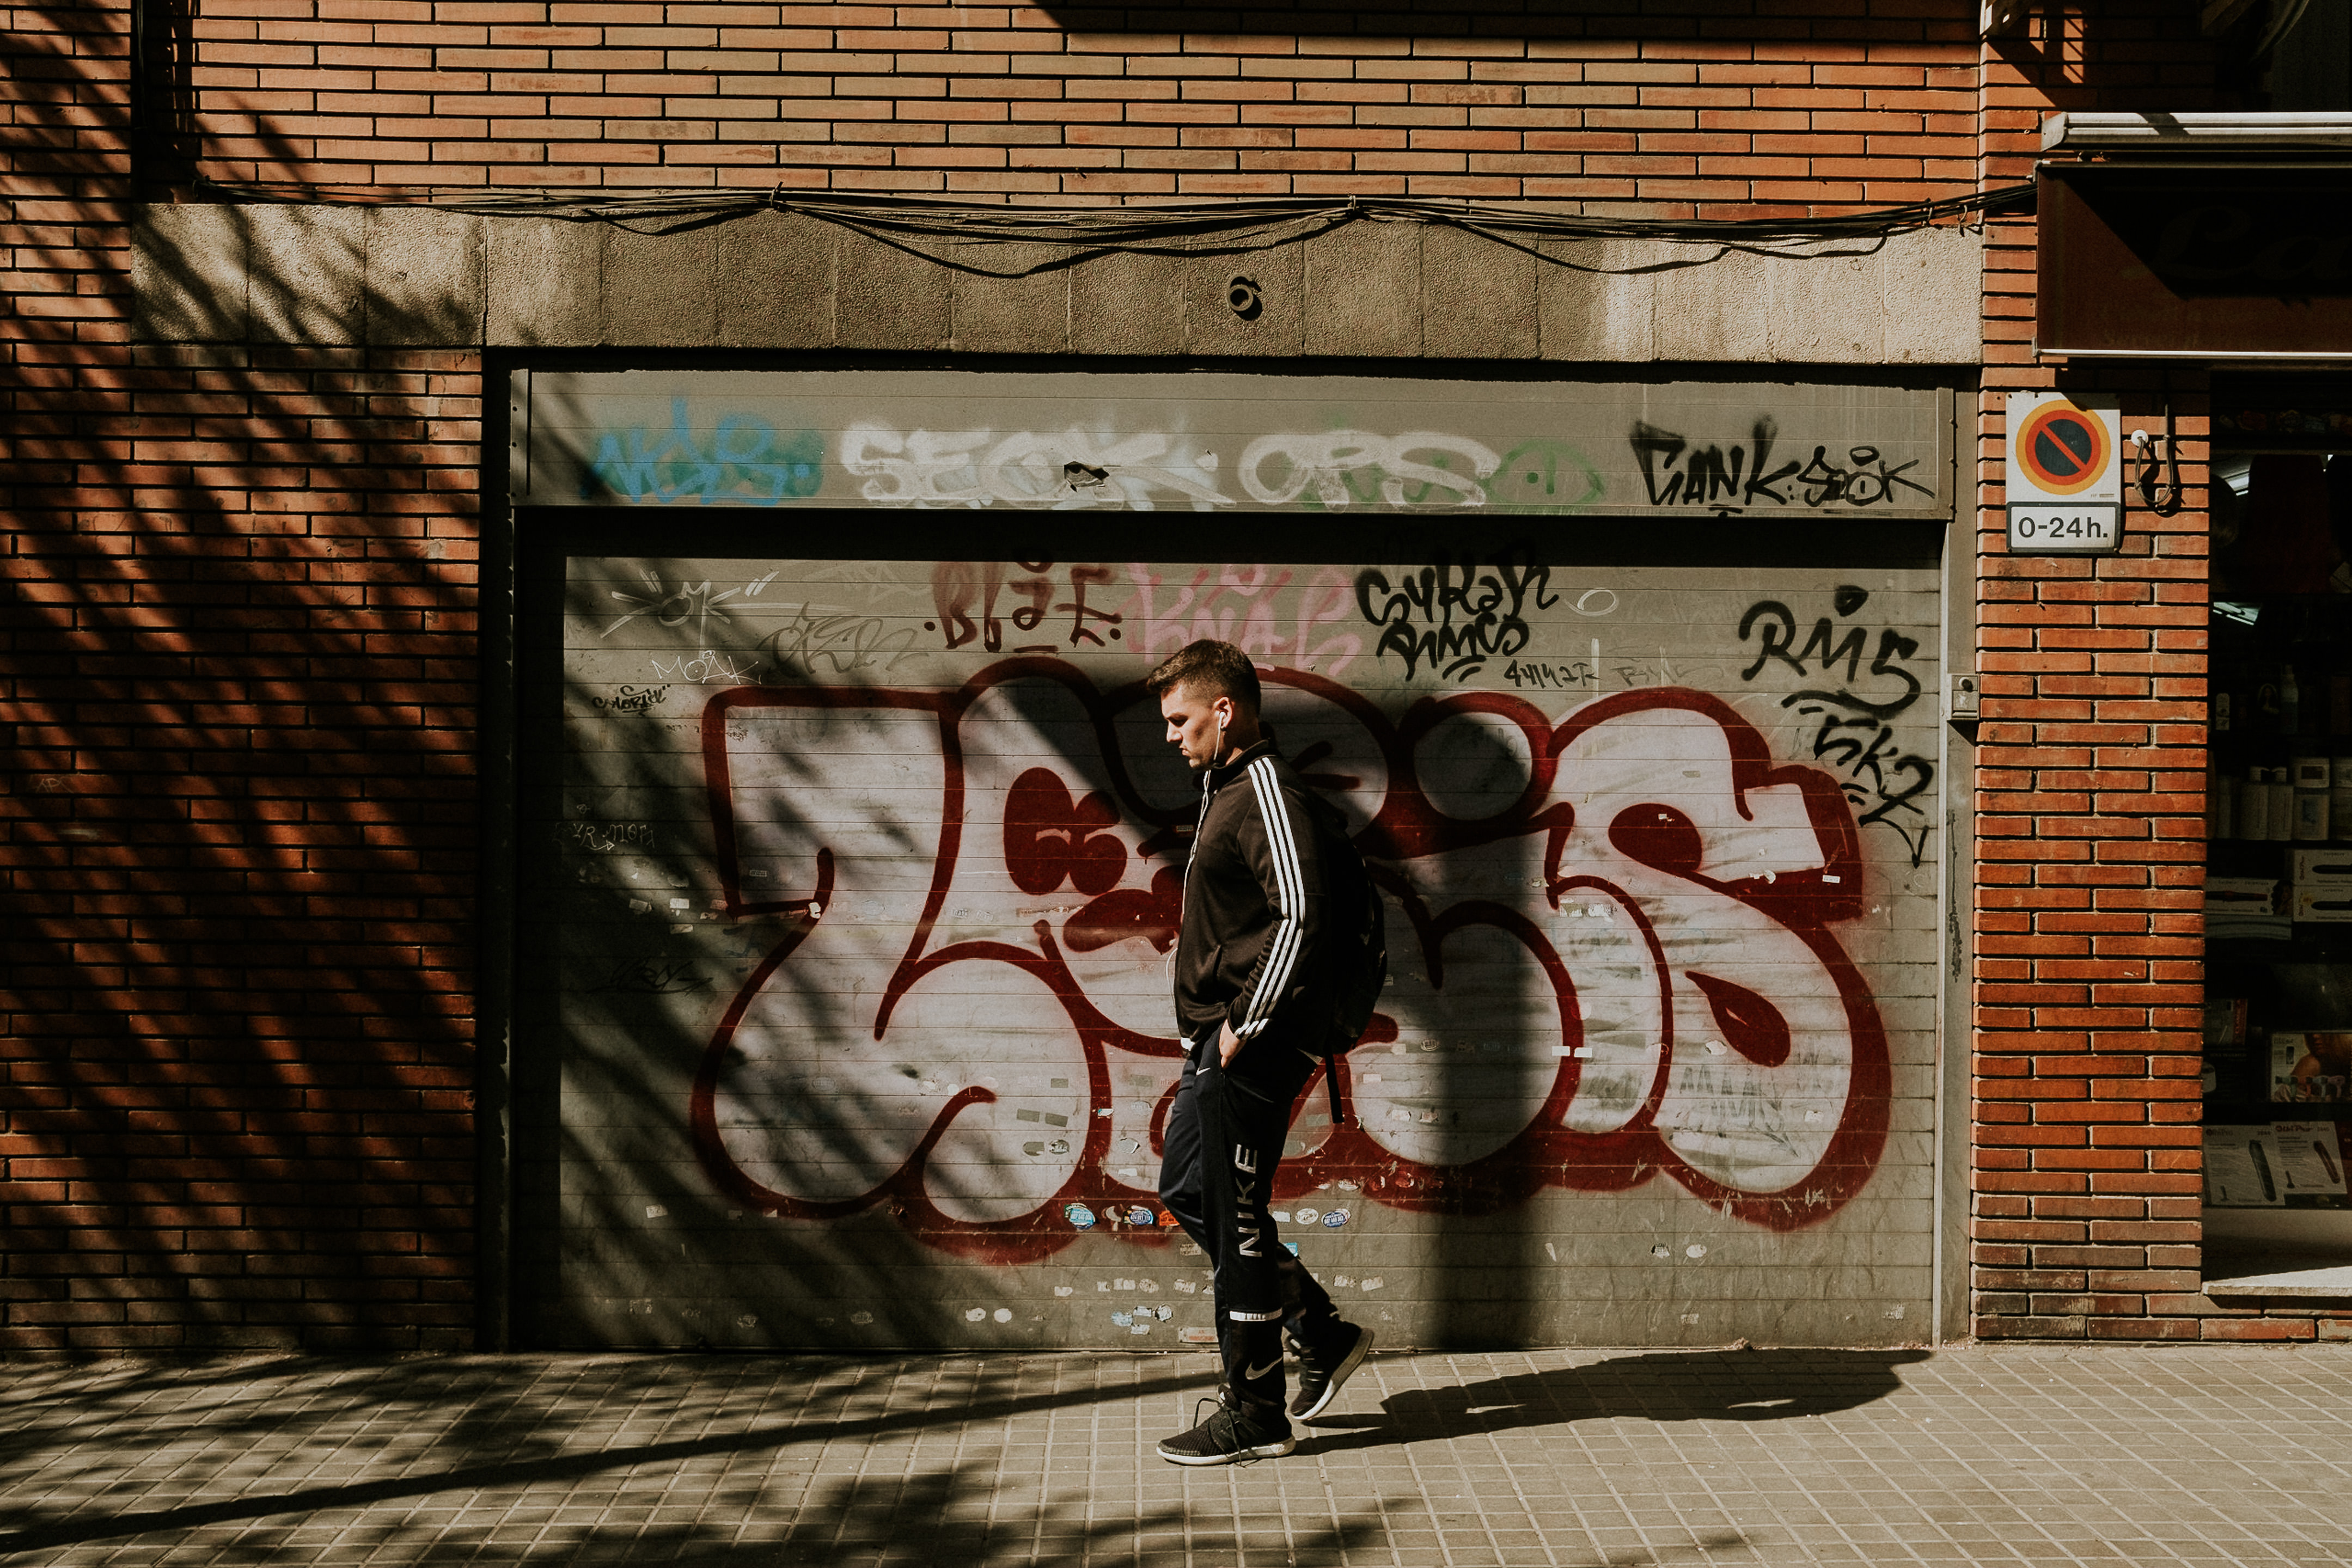 Street Photography Barcelona with graffiti